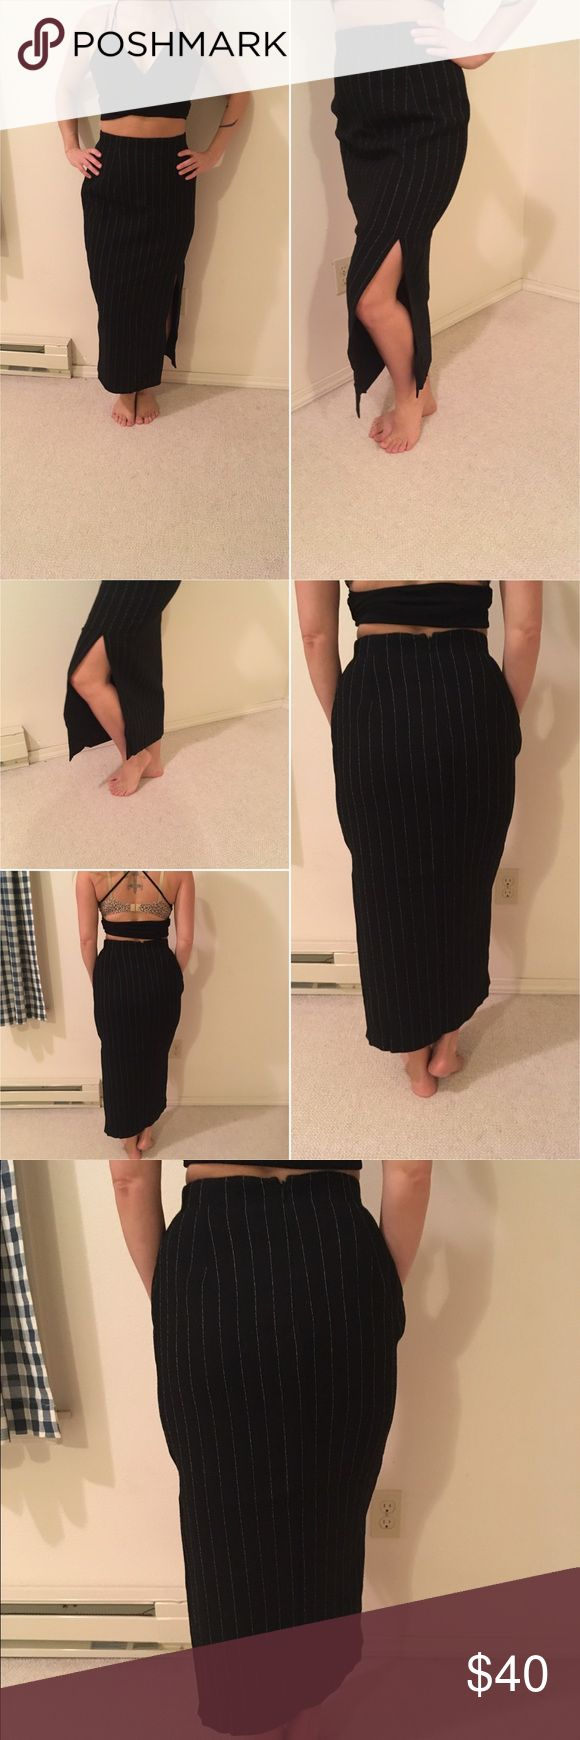 Black dress neiman marcus - Neiman Marcus Black High Waisted Skirt Gently Used Very Good Condition Lining 100